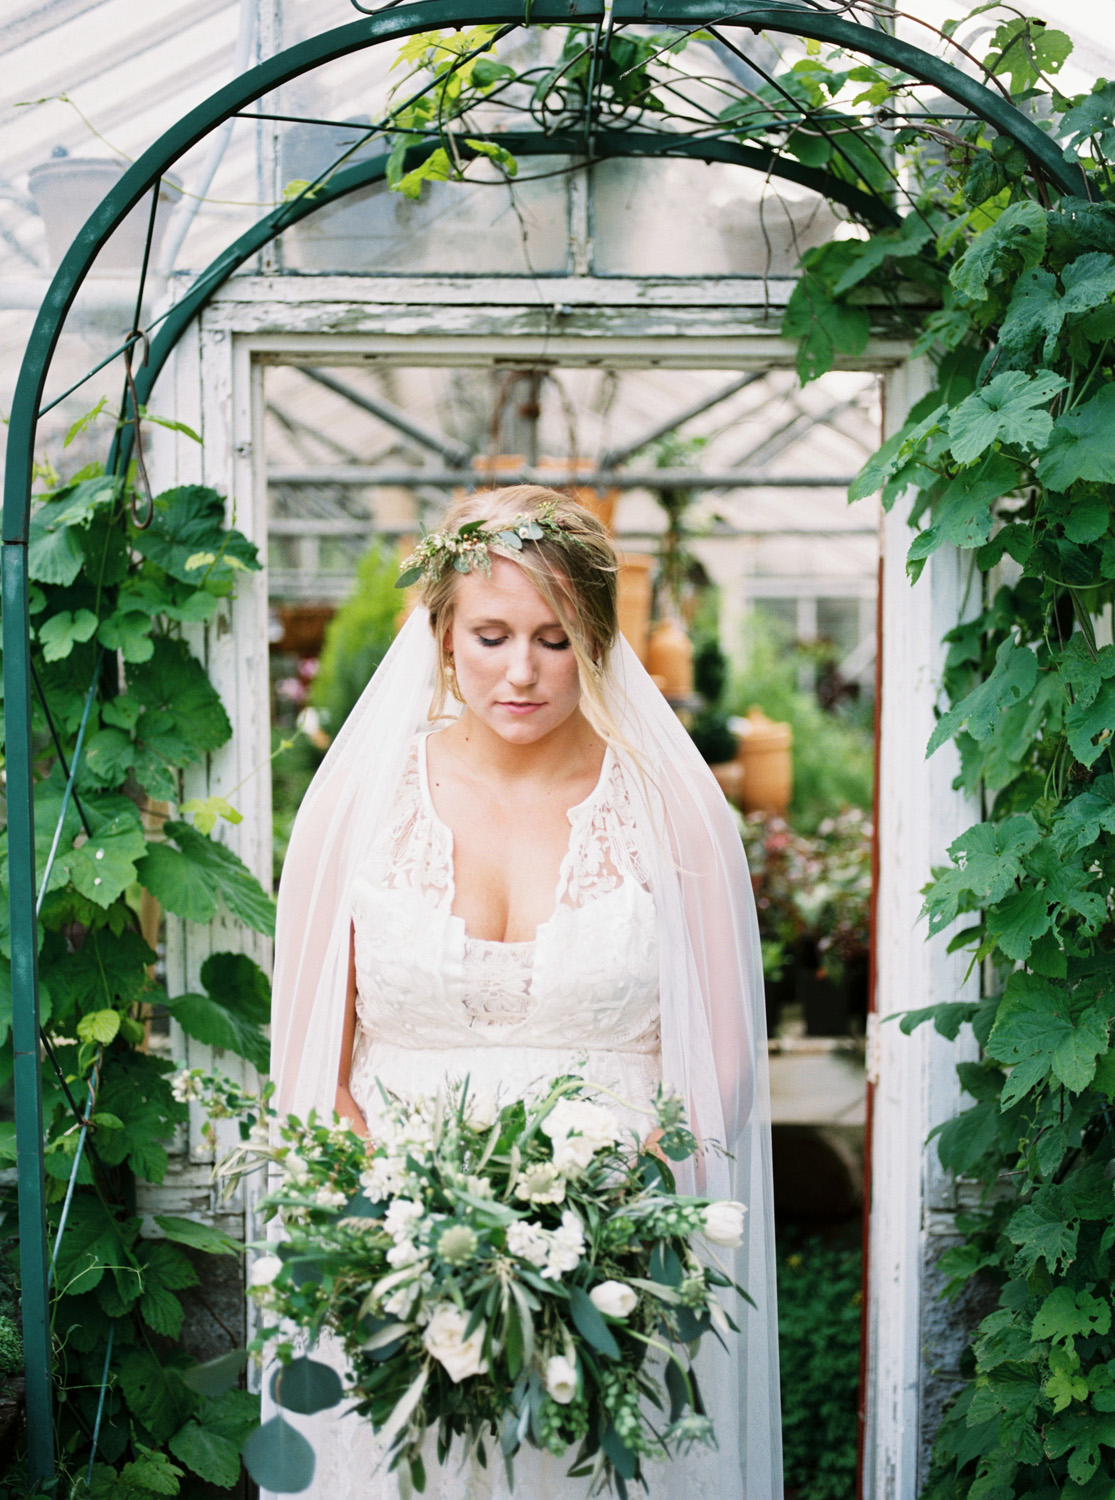 greenhouse-wedding-inspiration-by-laurelyn-savannah-photography-132.jpg